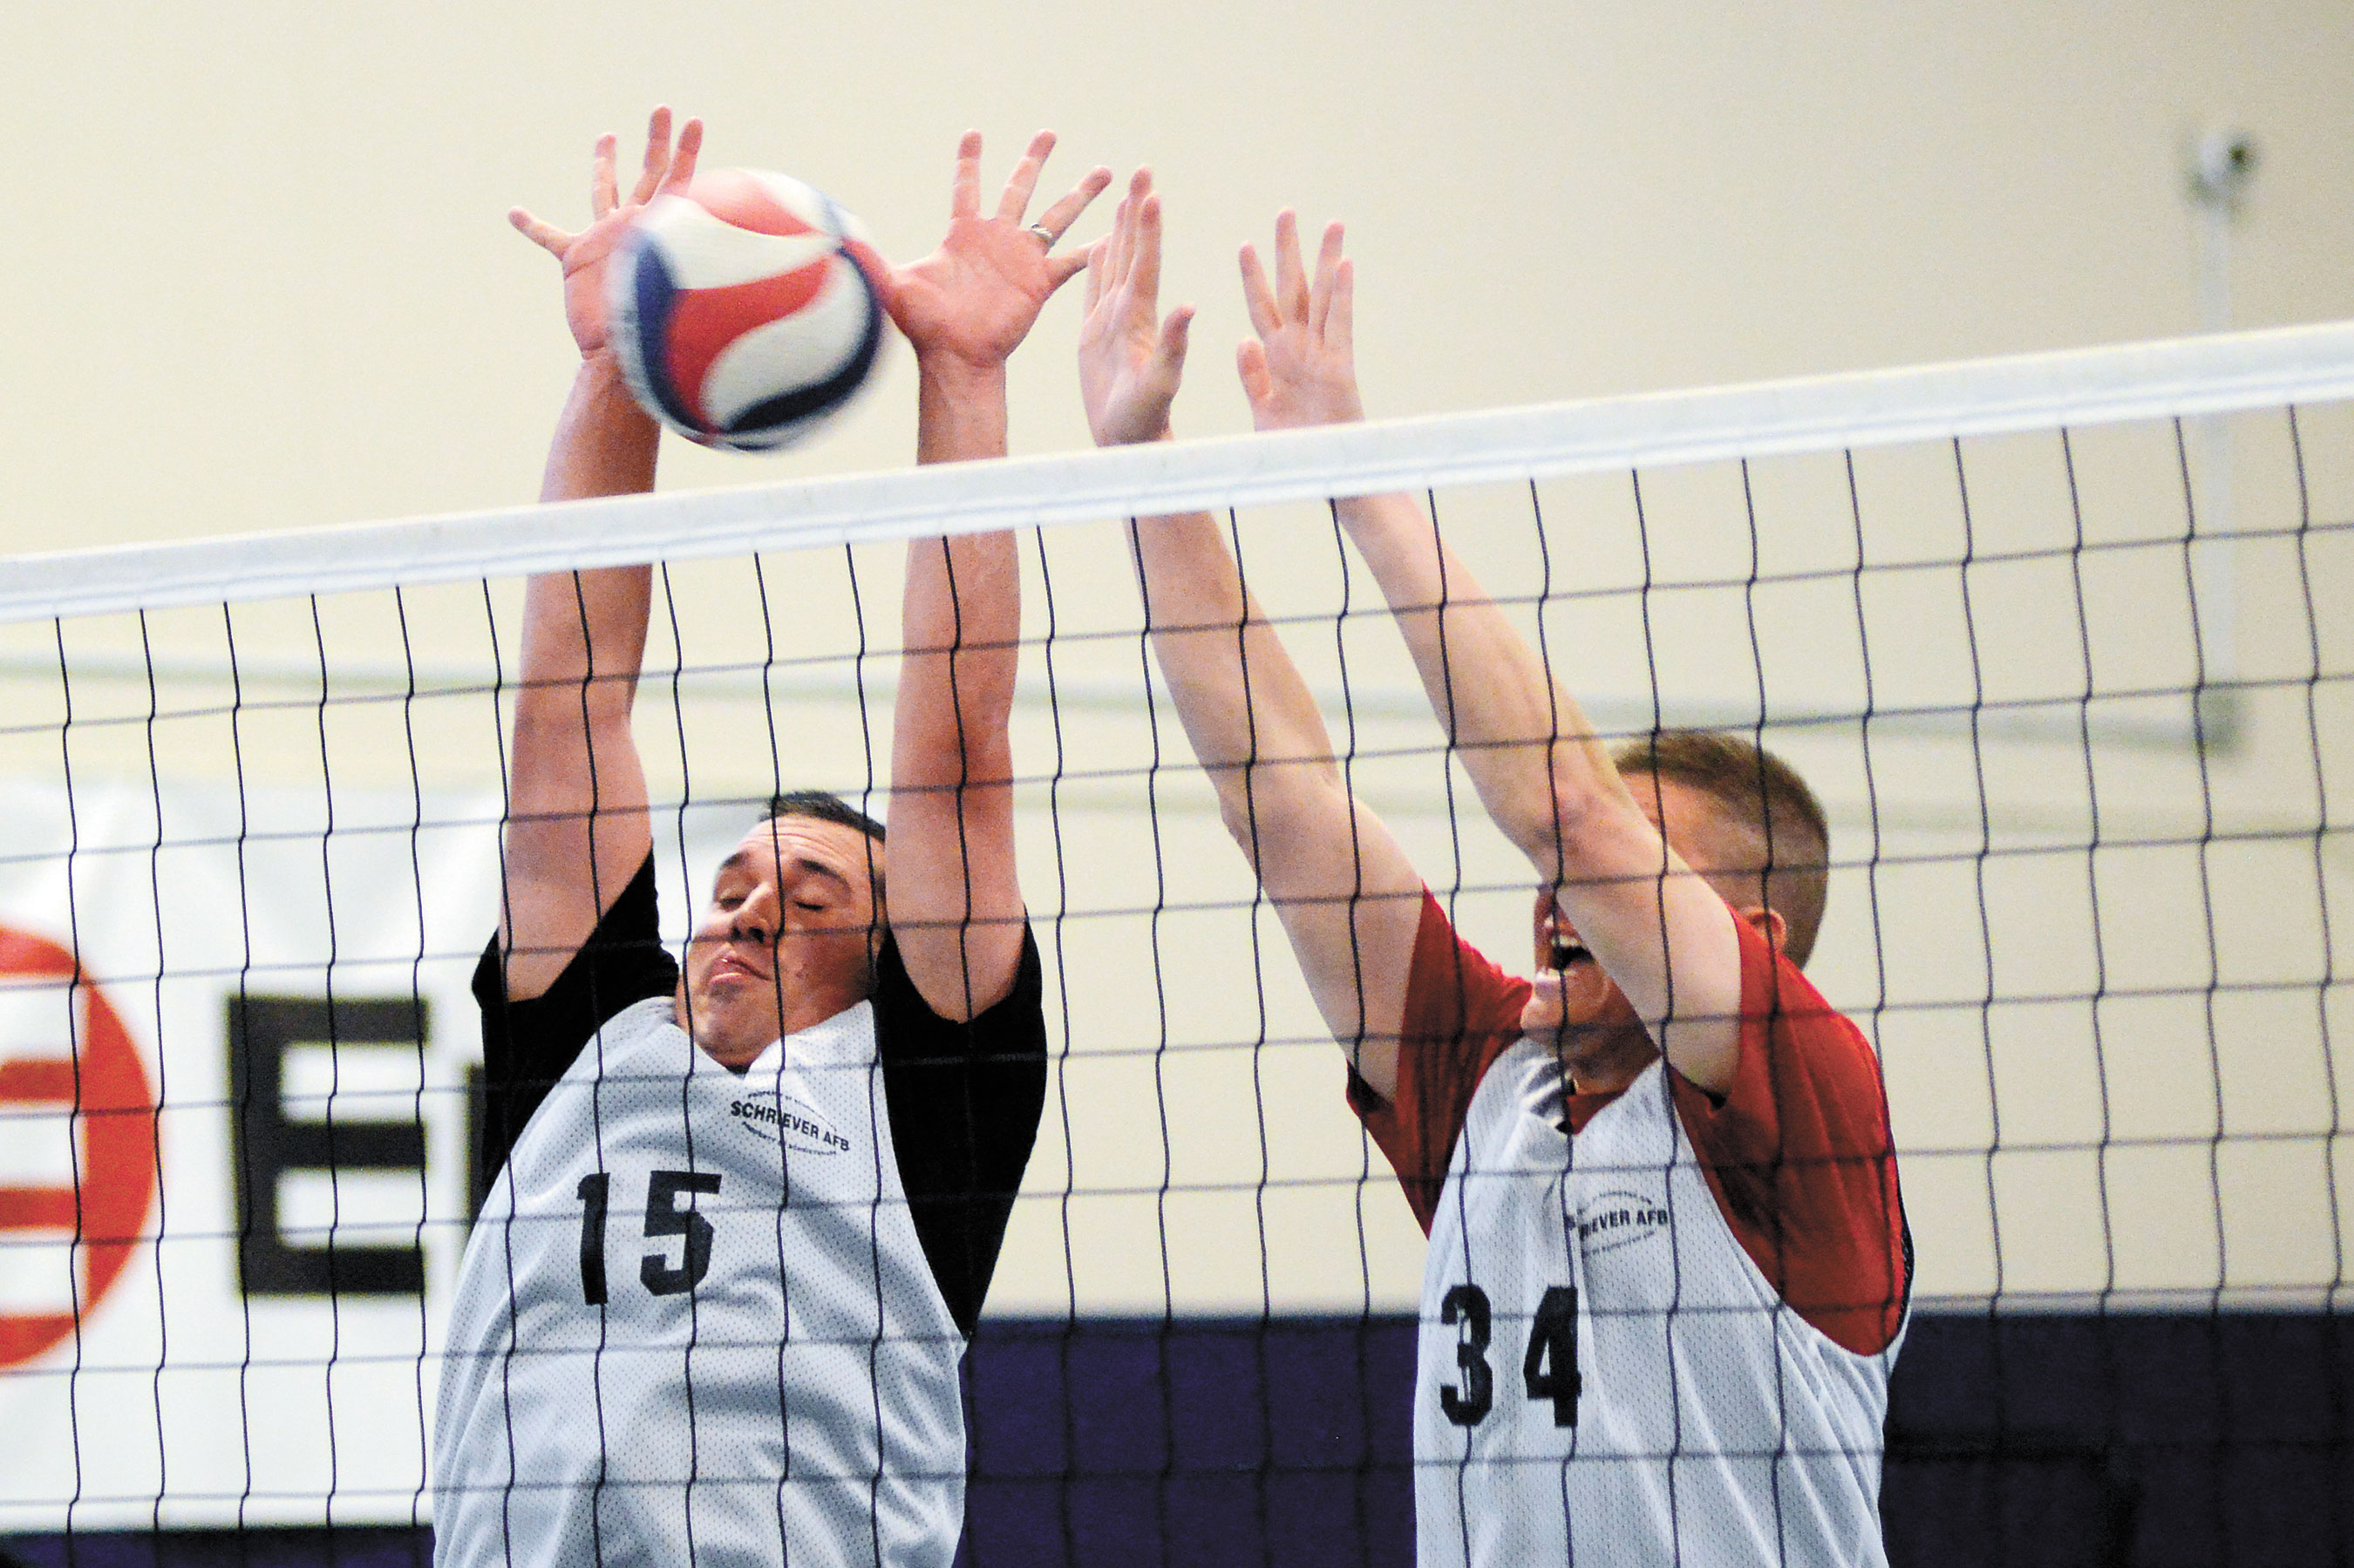 U.S. Air Force photo/Christopher DeWitt Eric Lewandowski, left, and John Thien, United States Air Force Warfare Center, go up for a block during the intramural volleyball championship game Thursday in the fitness center gym at Schriever Air Force Base, Colo. USAFWC defeated the 6th Space Operations Squadron 25-20 and 25-22 to win the title. U.S. Air Force photo/Christopher DeWitt Eric Lewandowski, left, and John Thien, United States Air Force Warfare Center, go up for a block during the intramural volleyball championship game Thursday in the fitness center gym at Schriever Air Force Base, Colo. USAFWC defeated the 6th Space Operations Squadron 25-20 and 25-22 to win the title.